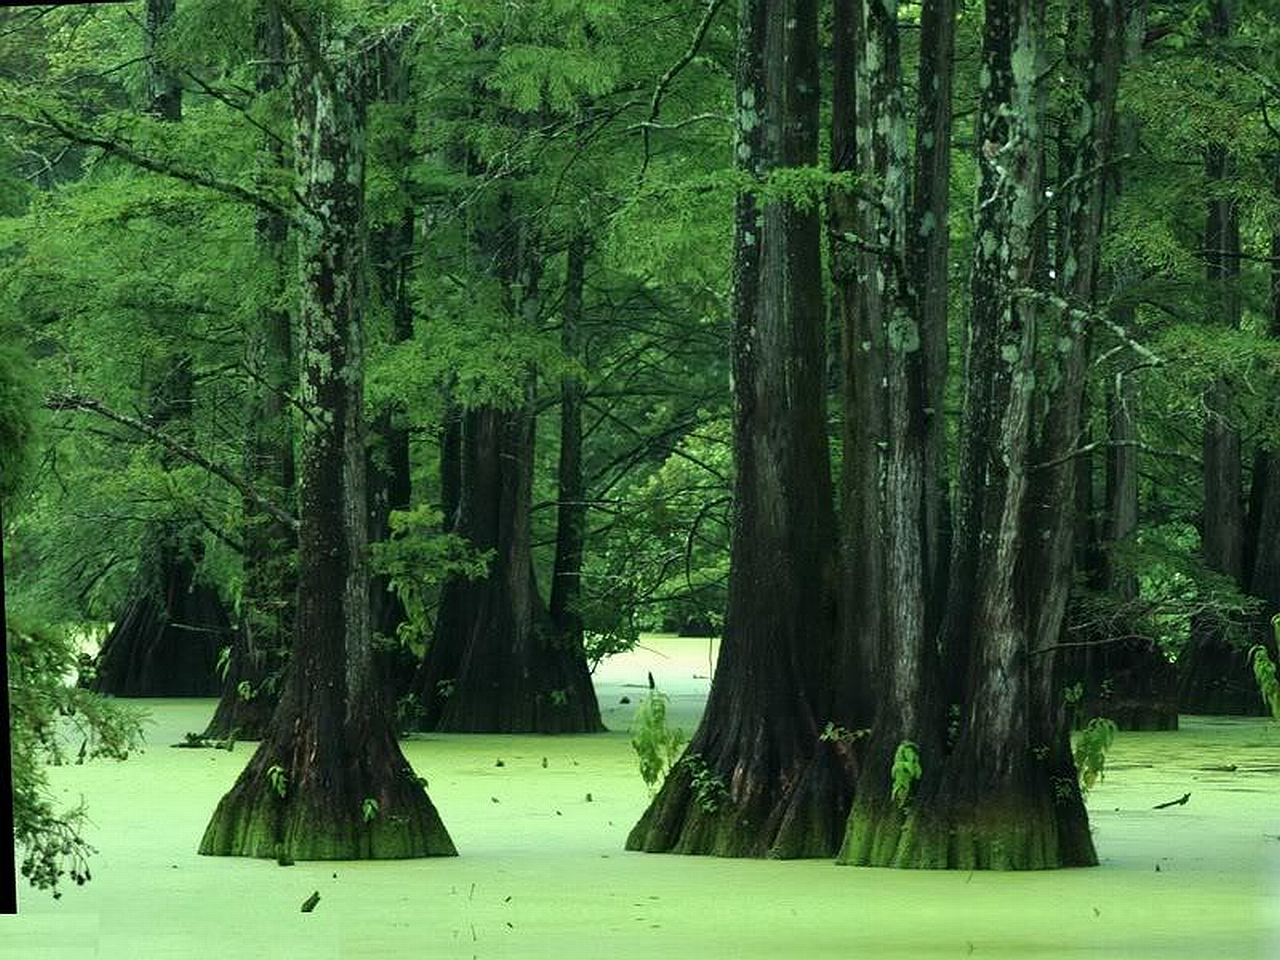 Swamp Computer Wallpapers Desktop Backgrounds 1280x960 ID195052 1280x960